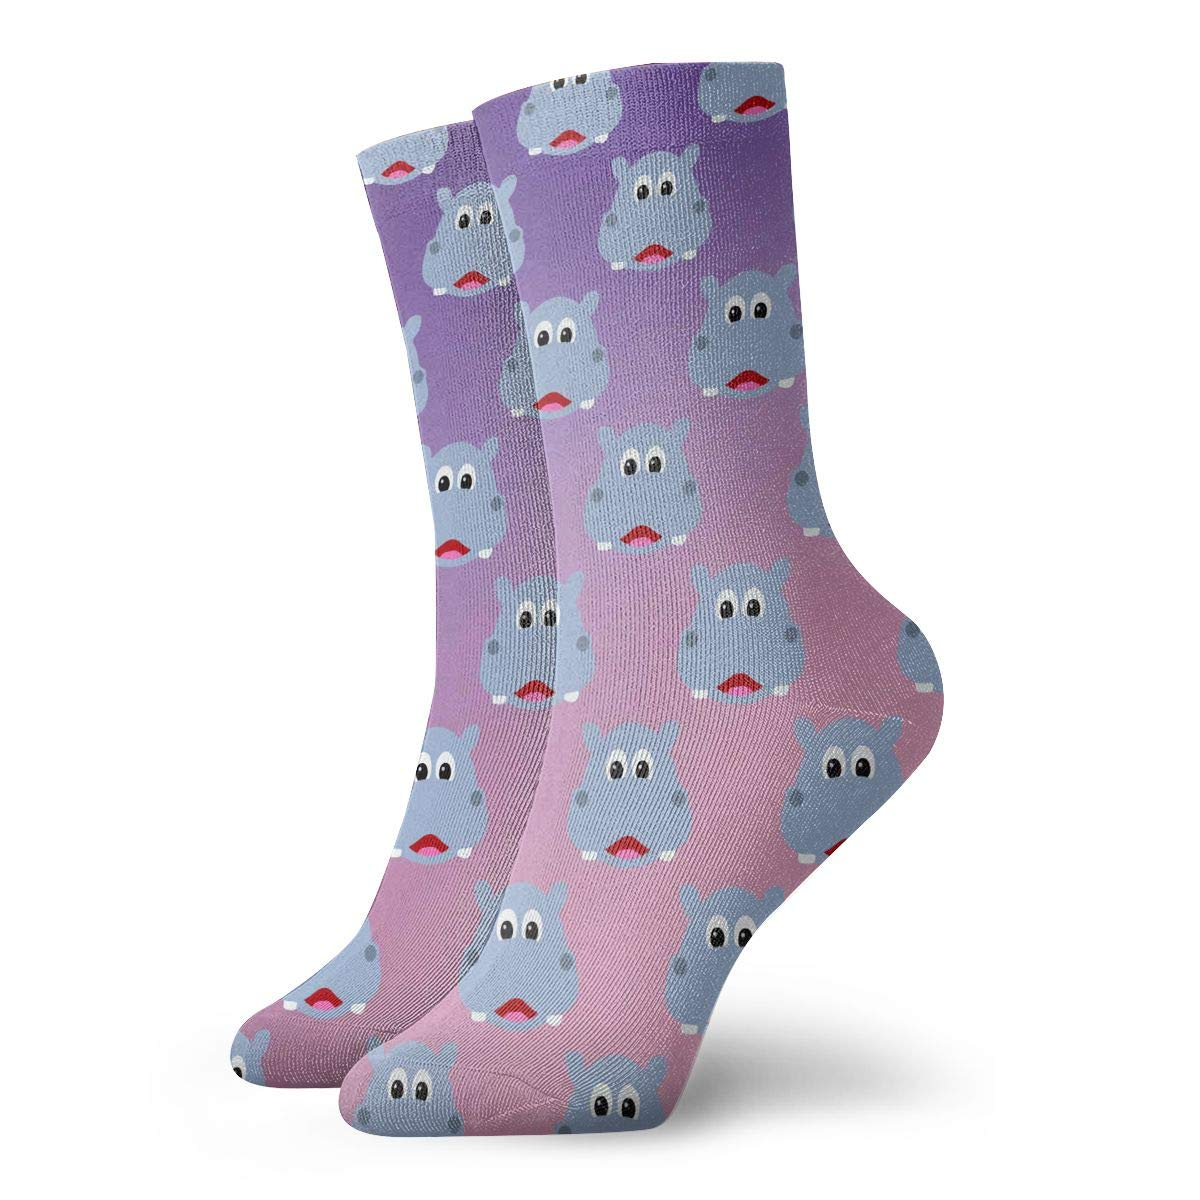 Pattern Red Unisex Funny Casual Crew Socks Athletic Socks For Boys Girls Kids Teenagers